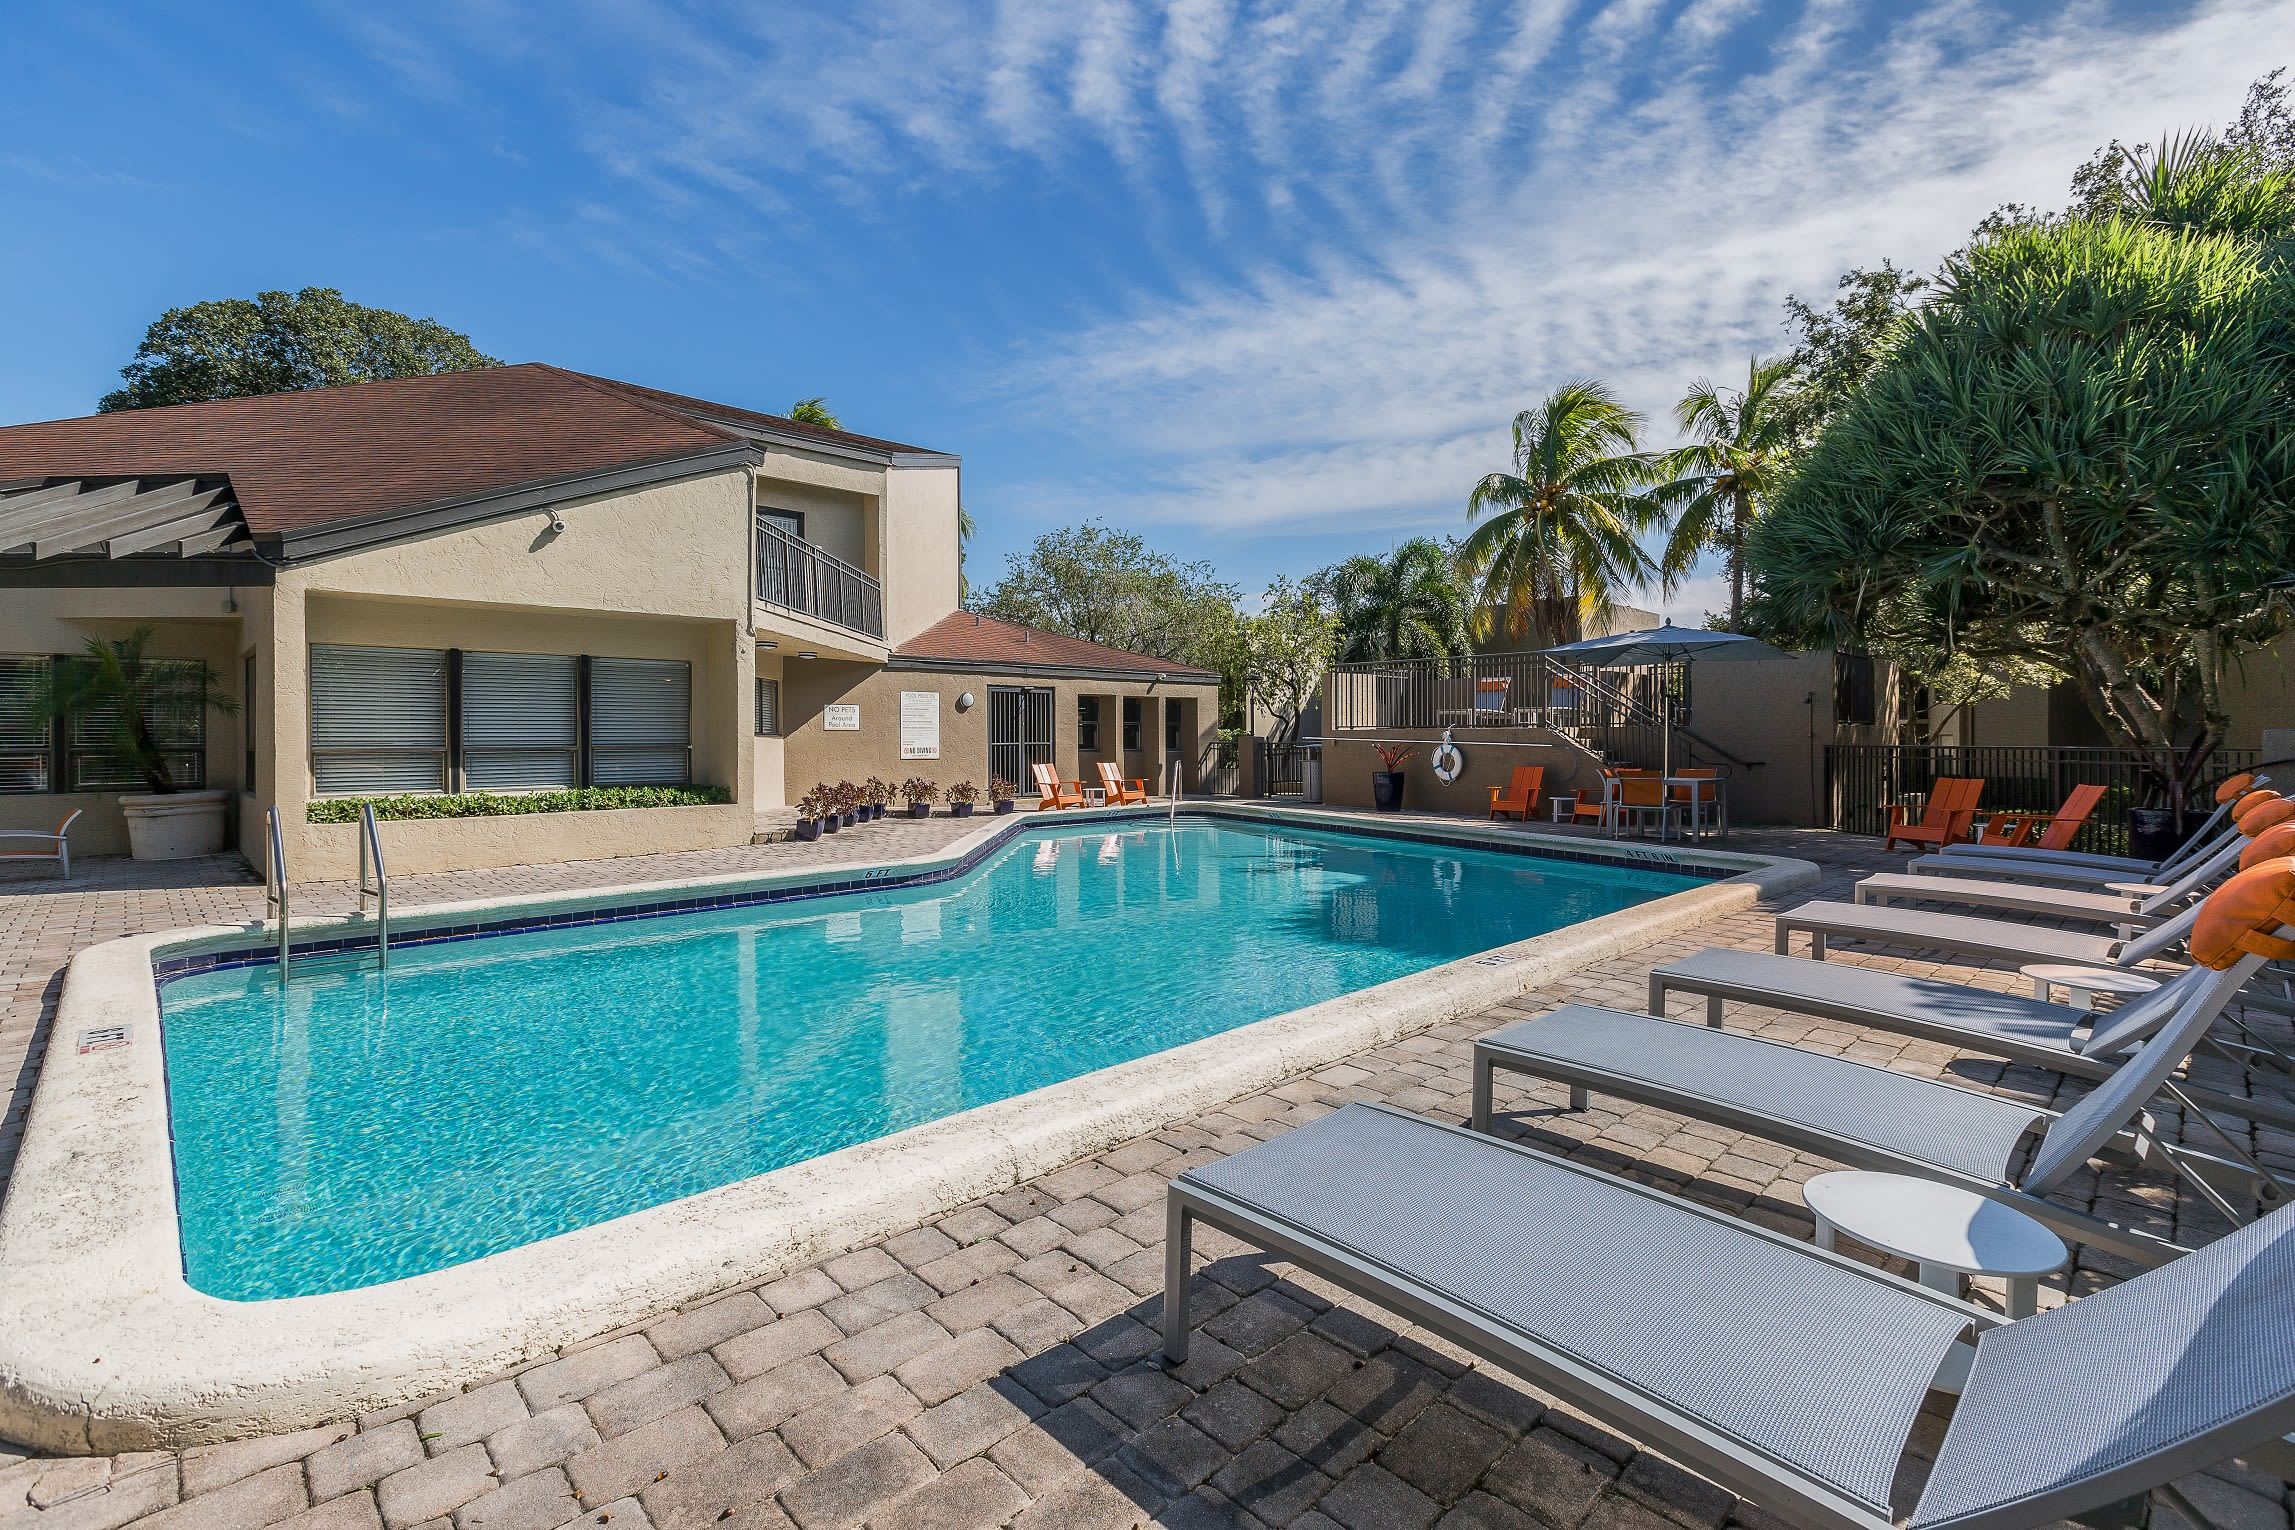 Gorgeous swimming pool area on a beautiful day at Siena Apartments in Plantation, Florida